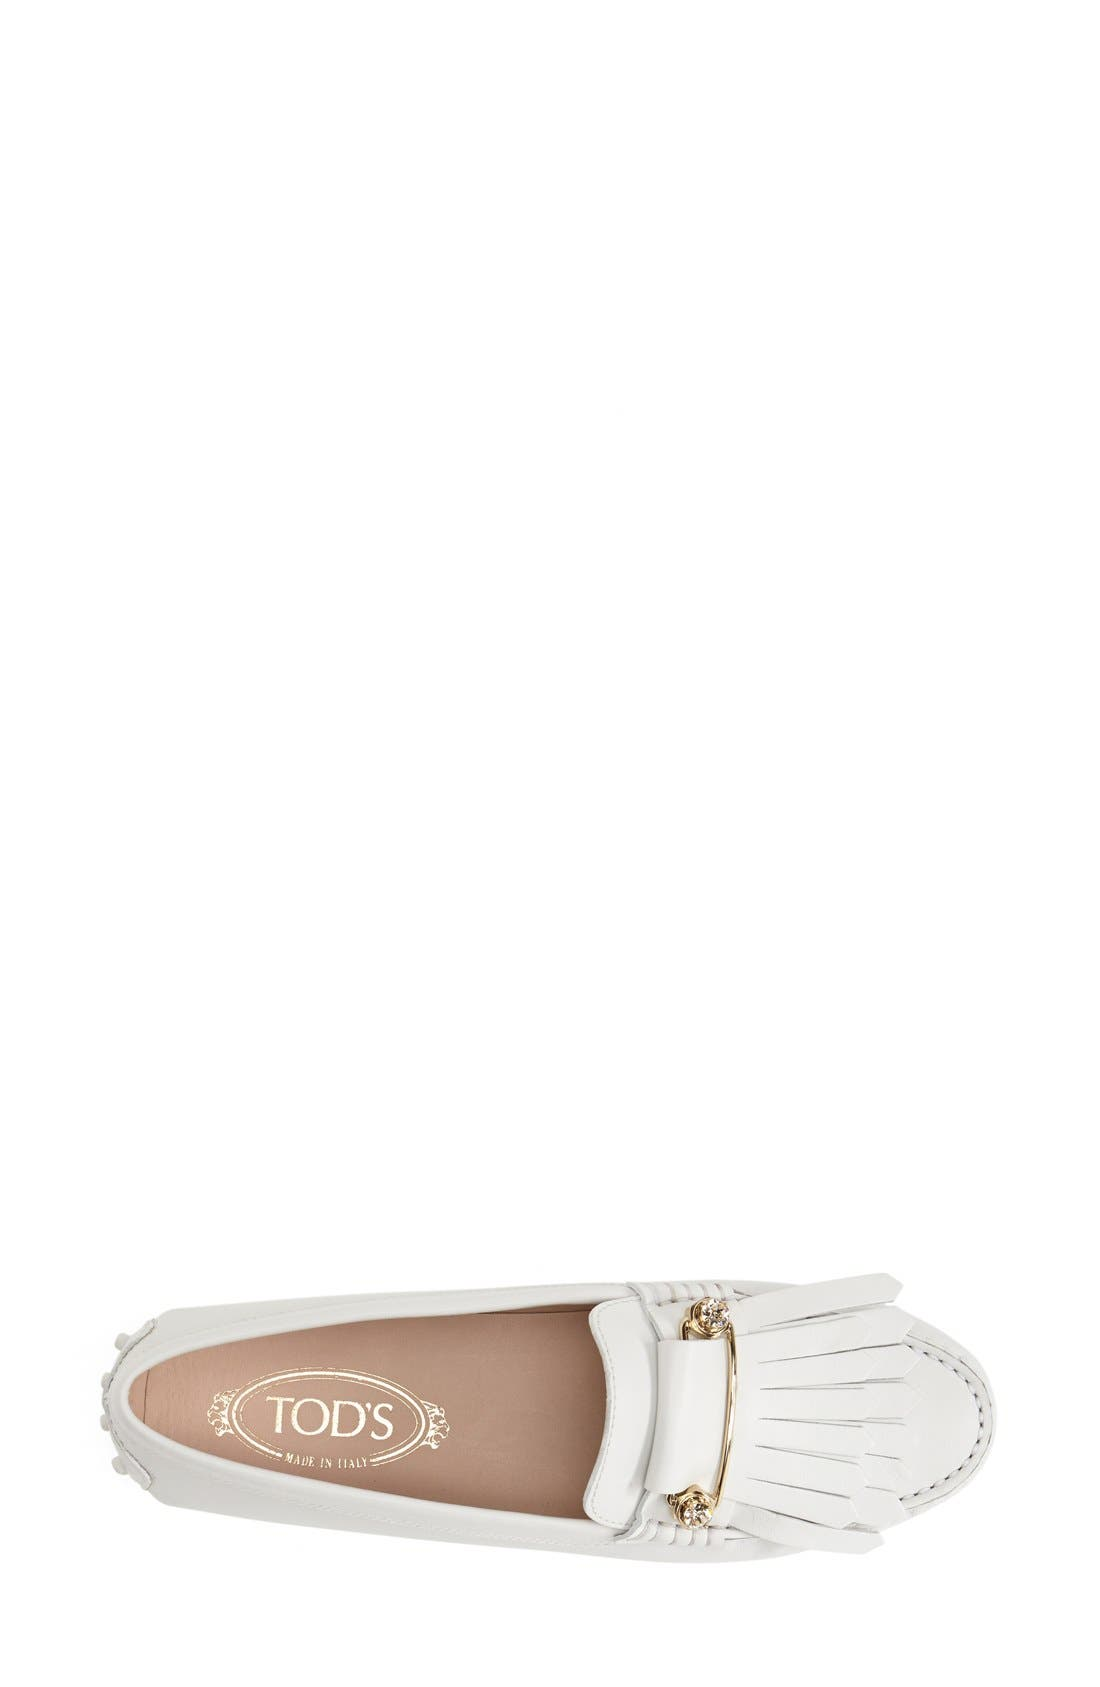 TOD'S,                             'Gommini' Crystal Embellished Fringed Leather Driving Moccasin,                             Alternate thumbnail 2, color,                             100